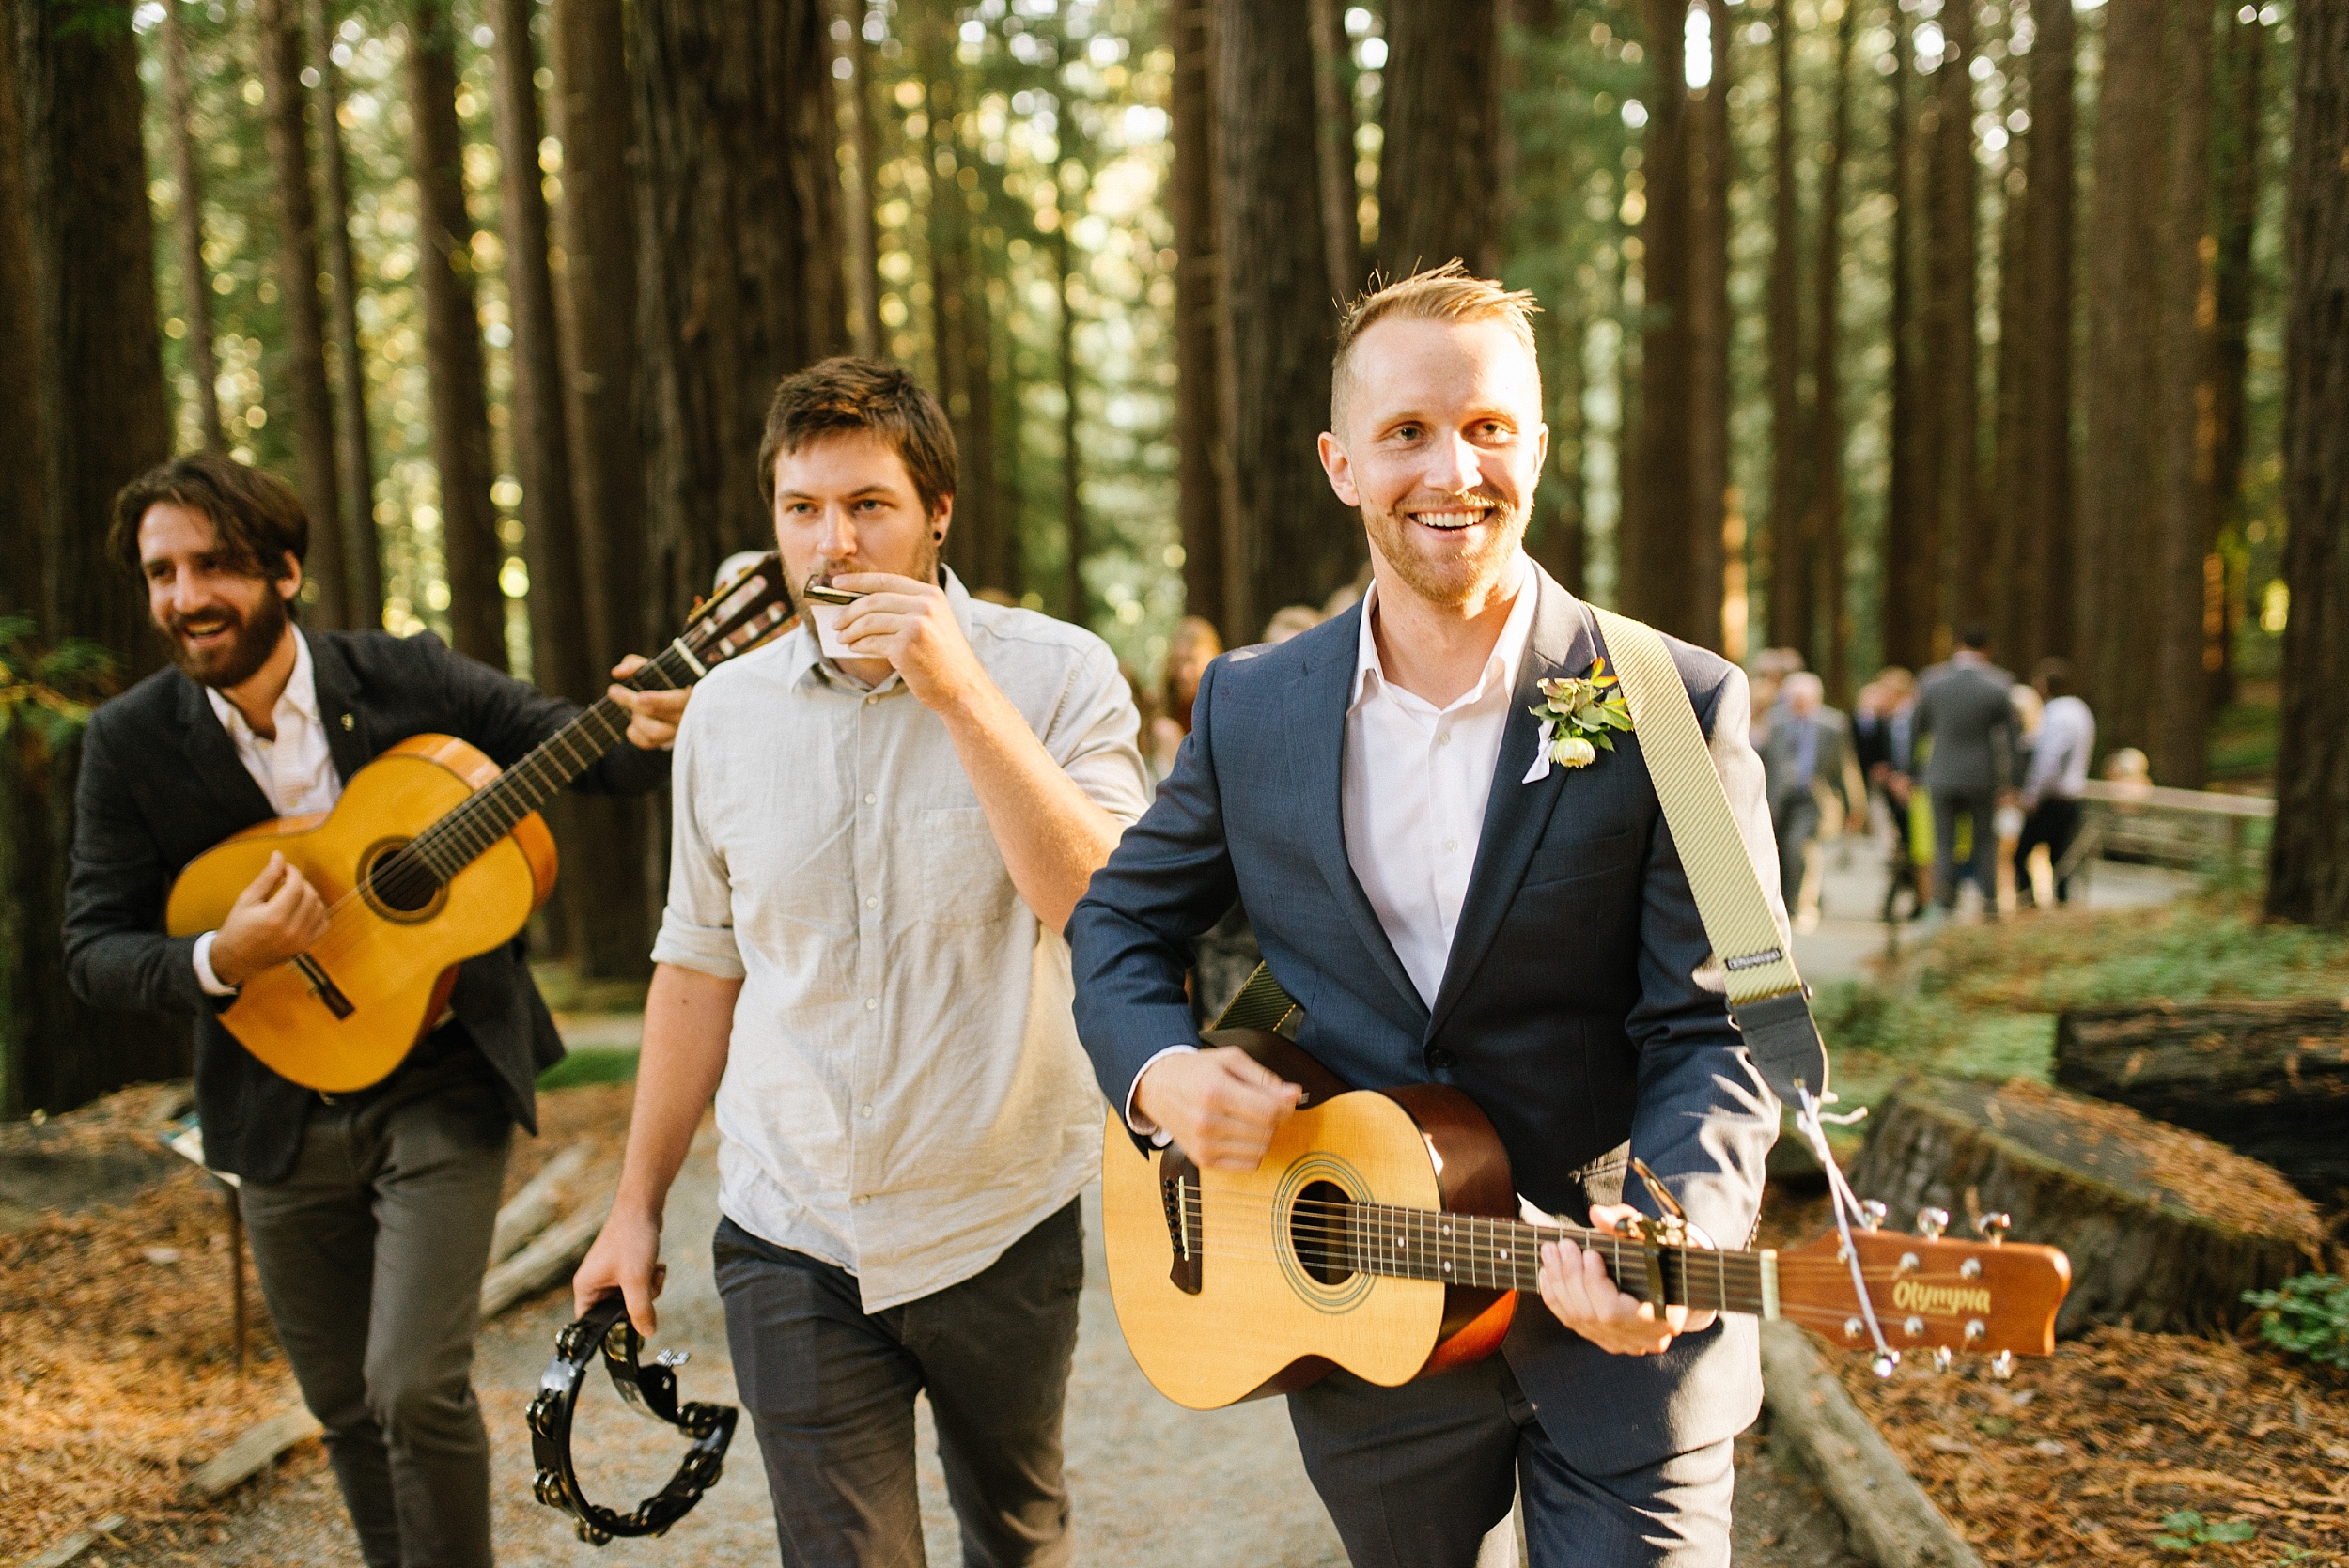 noahhannah_redwoods_botanical_wedding_berkeley_cdp_0036.jpg